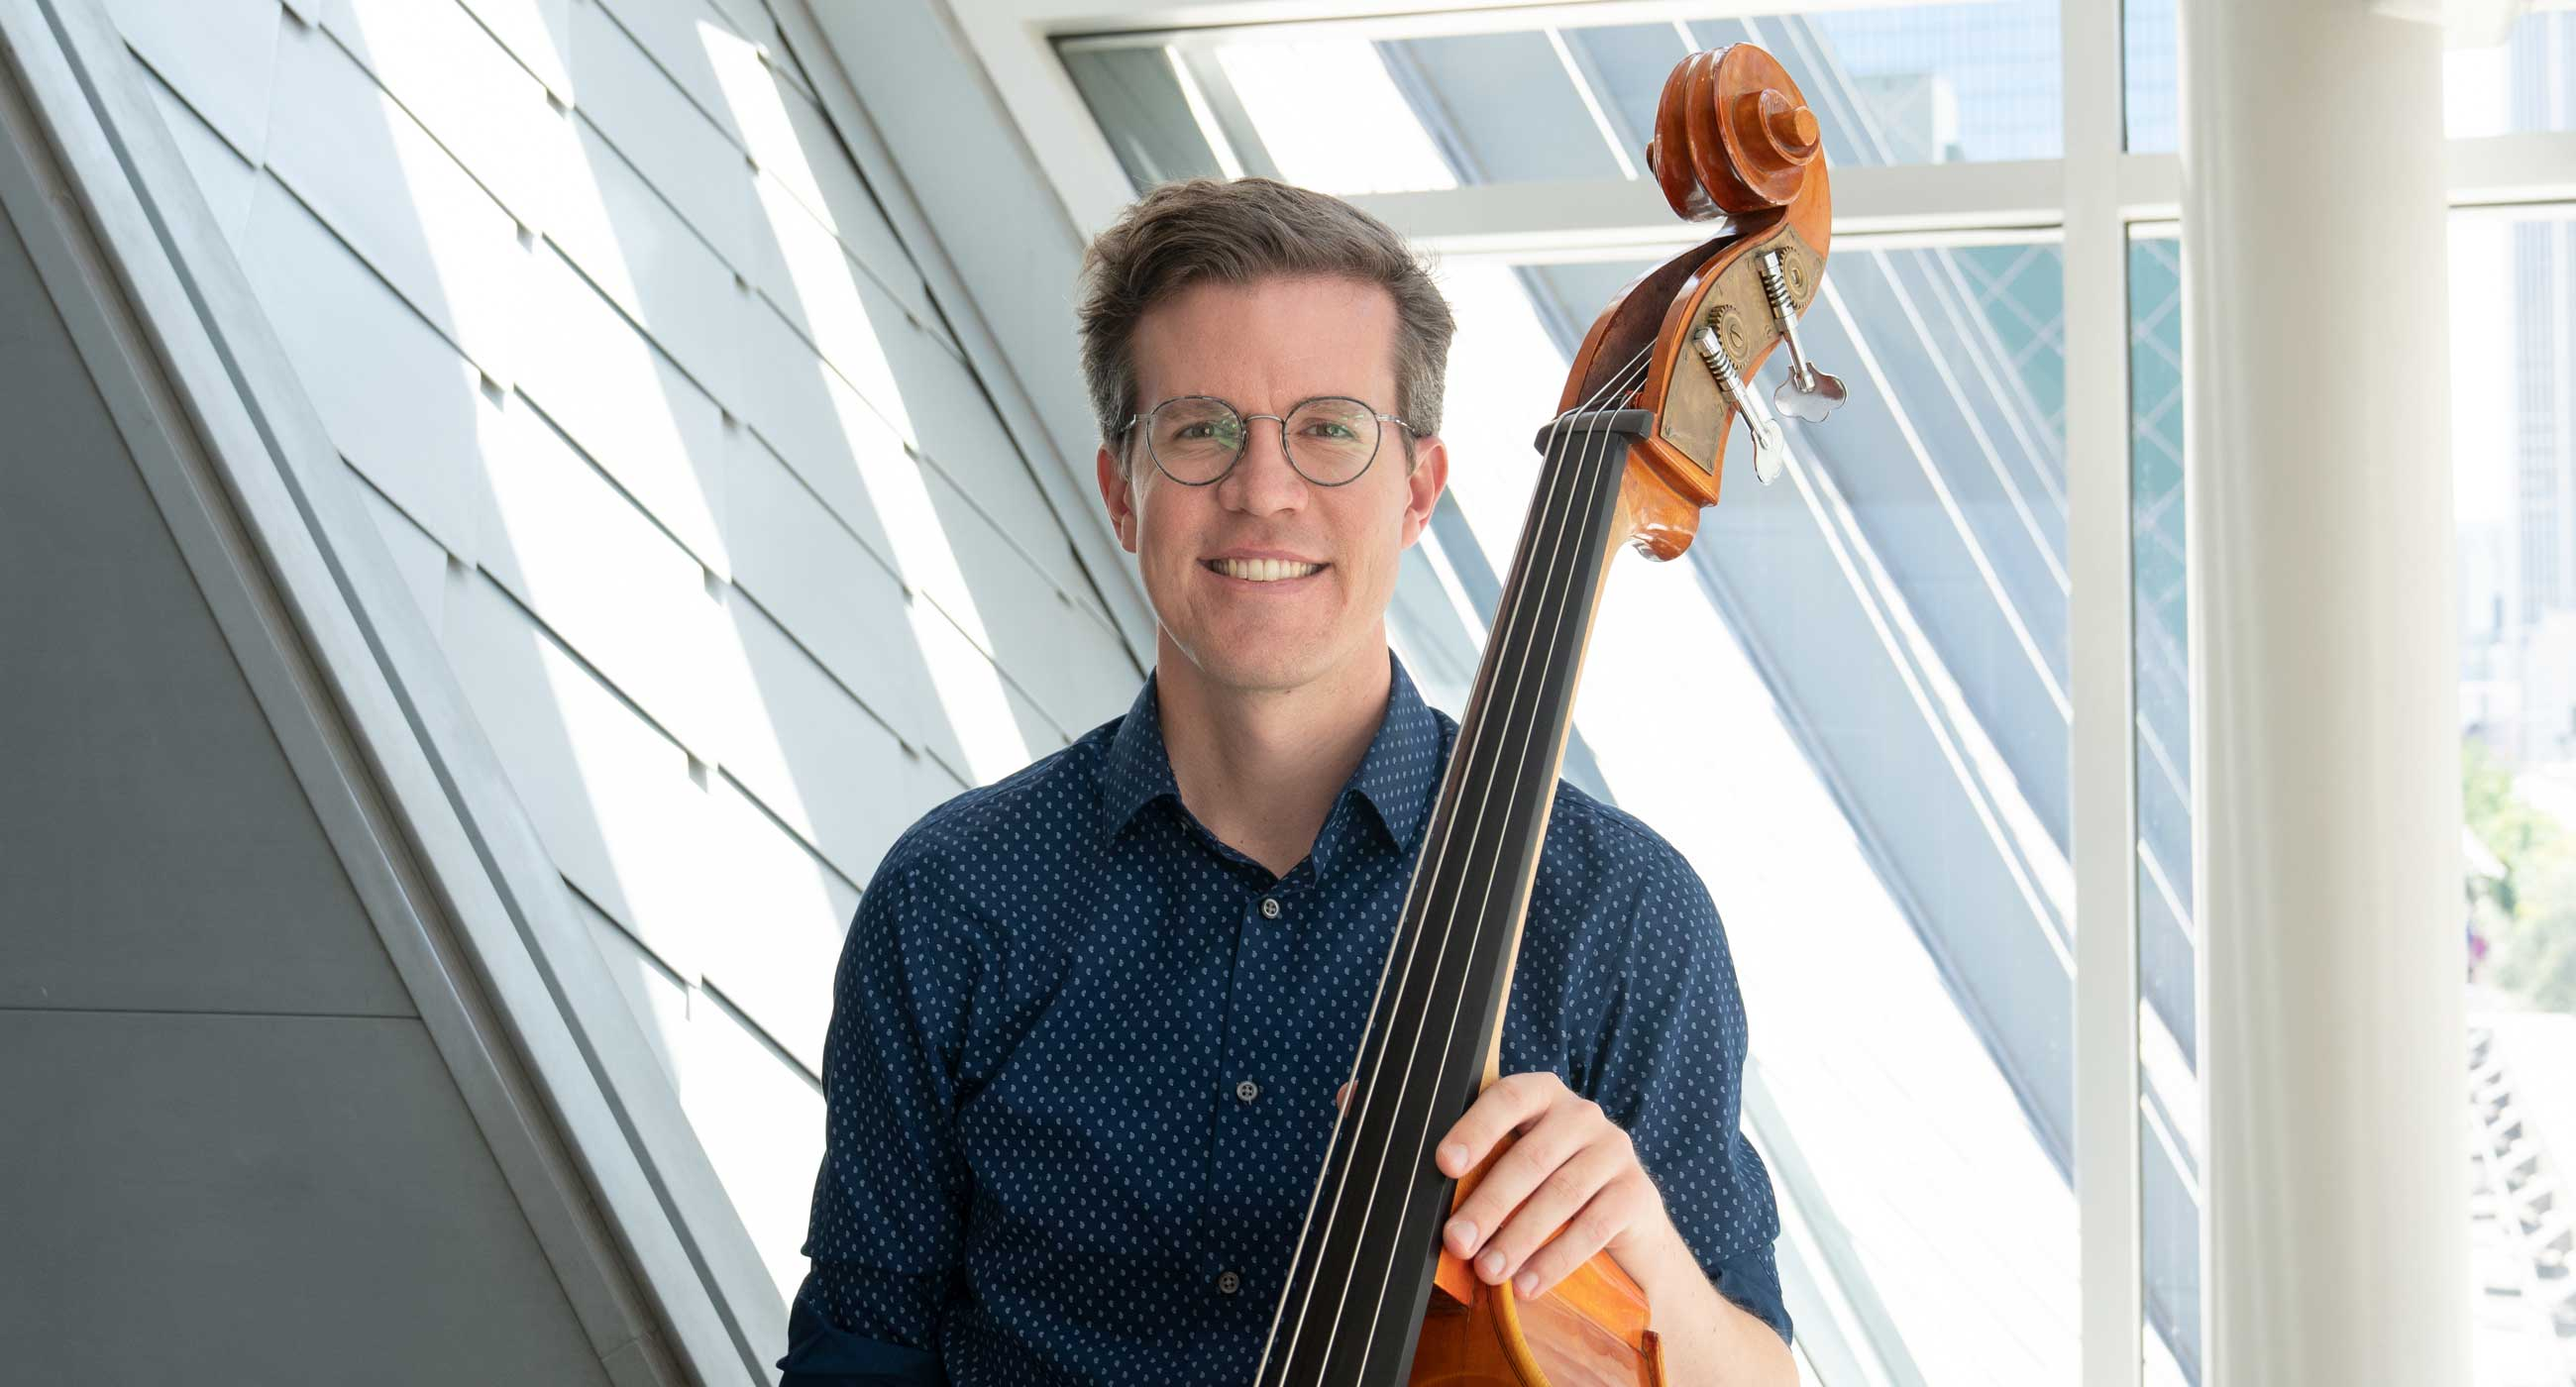 Ted Botsford holding a bass and smiling in front of a window.